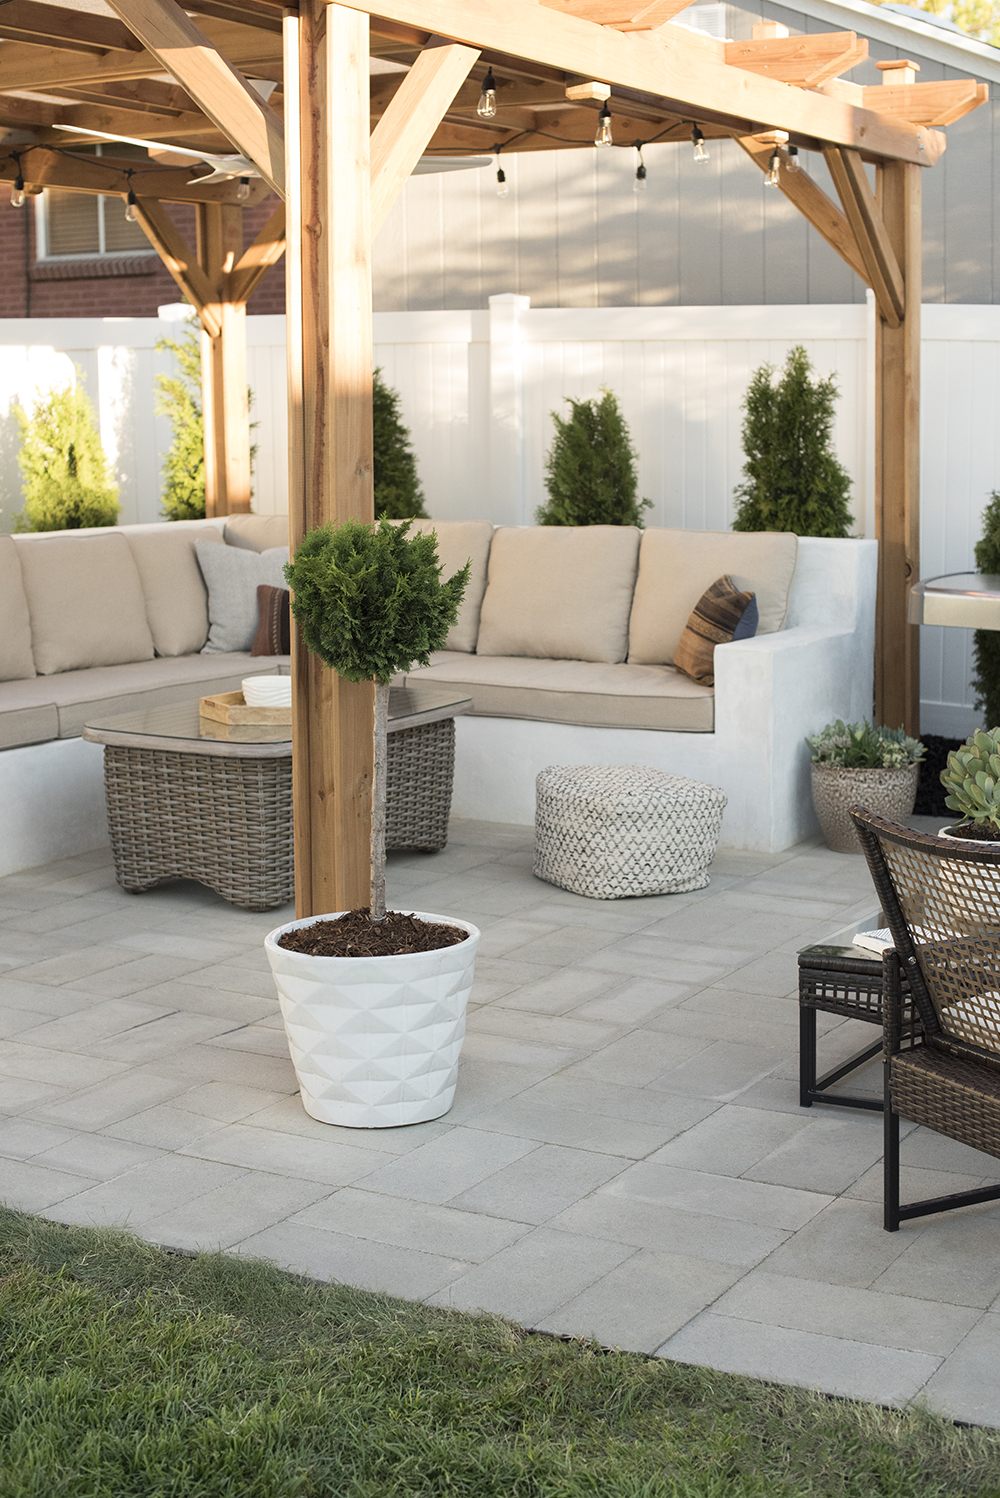 How to install a custom paver patio room for tuesday blog for Paver patio ideas pictures